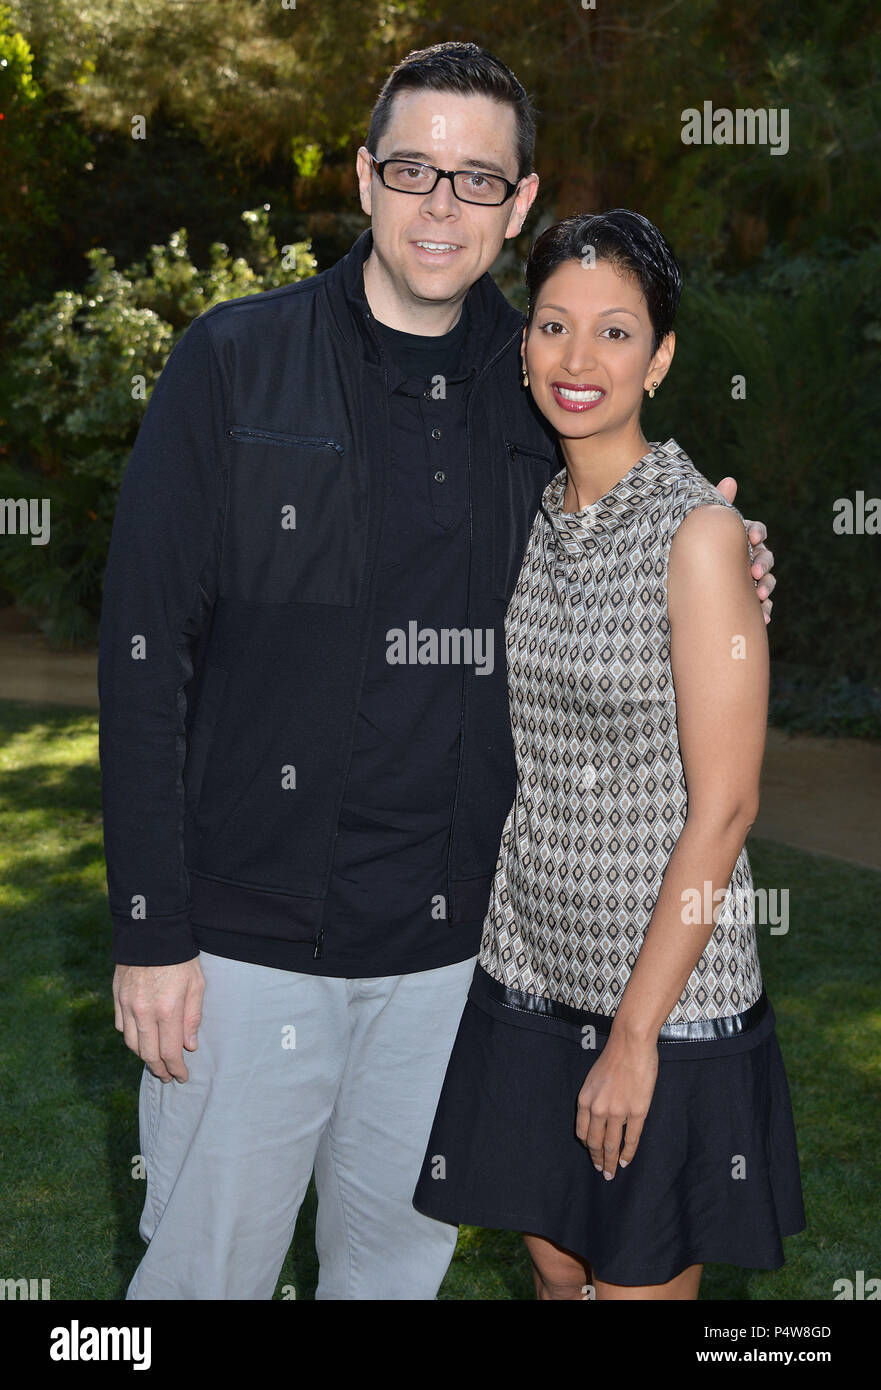 Aron Gaudet, Gita Pullapilly  attends Variety's Creative Impact Awards and 10 Directors to Watch brunch presented by Mercedes-Benz at The 25th Annual Palm Springs International Film Festival at Parker Palm SpringsAron Gaudet, Gita Pullapilly  ------------- Red Carpet Event, Vertical, USA, Film Industry, Celebrities,  Photography, Bestof, Arts Culture and Entertainment, Topix Celebrities fashion /  Vertical, Best of, Event in Hollywood Life - California,  Red Carpet and backstage, USA, Film Industry, Celebrities,  movie celebrities, TV celebrities, Music celebrities, Photography, Bestof, Arts C - Stock Image